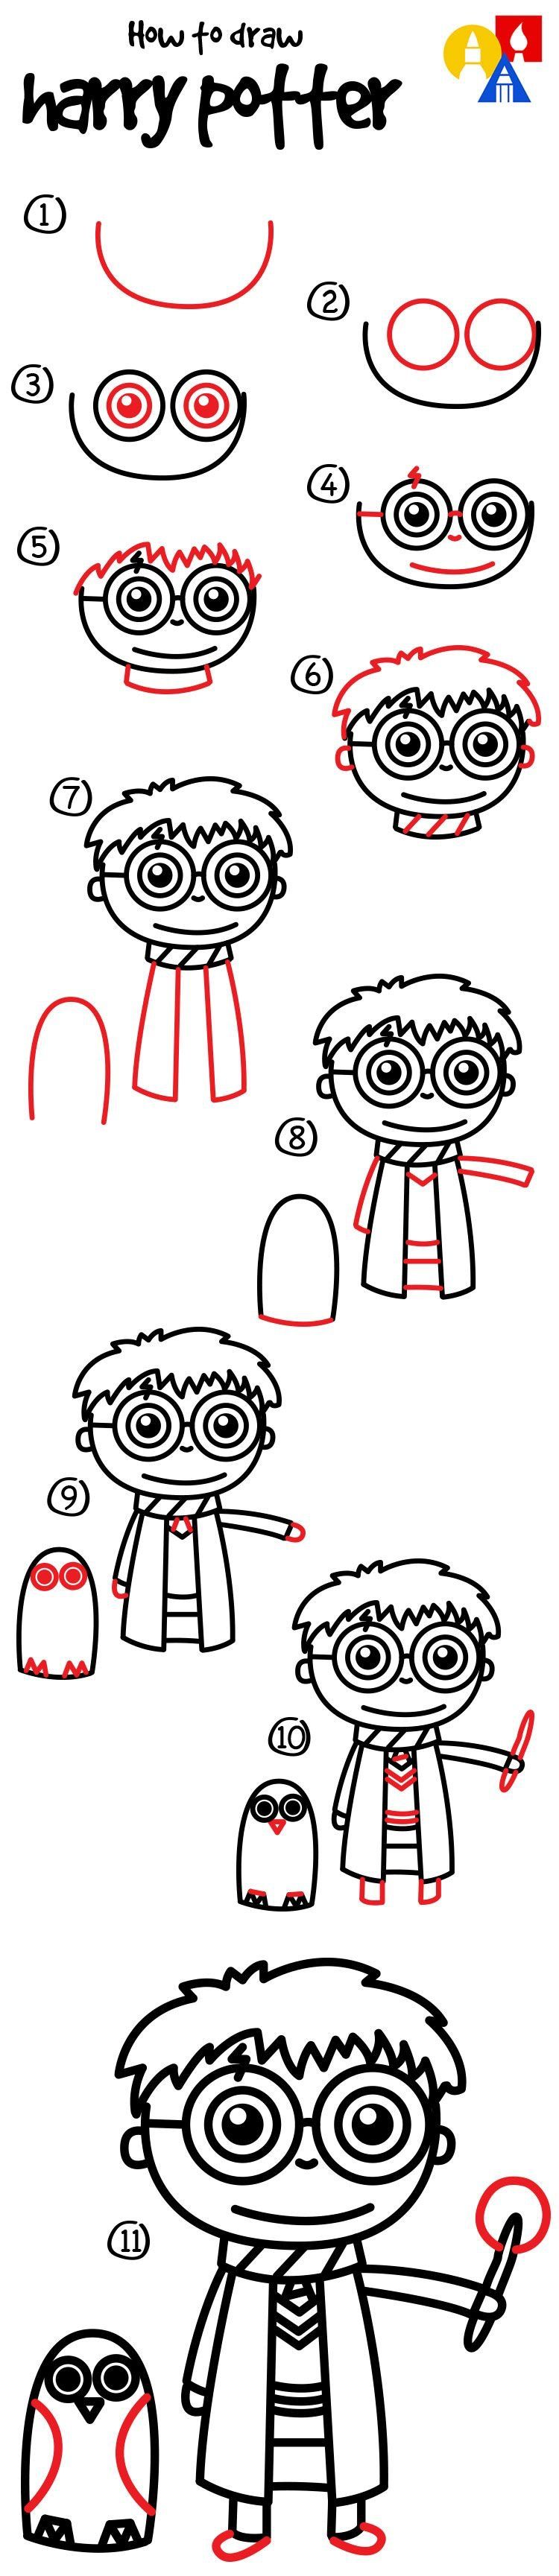 Élégant Dessin A Colorier Harry Potter